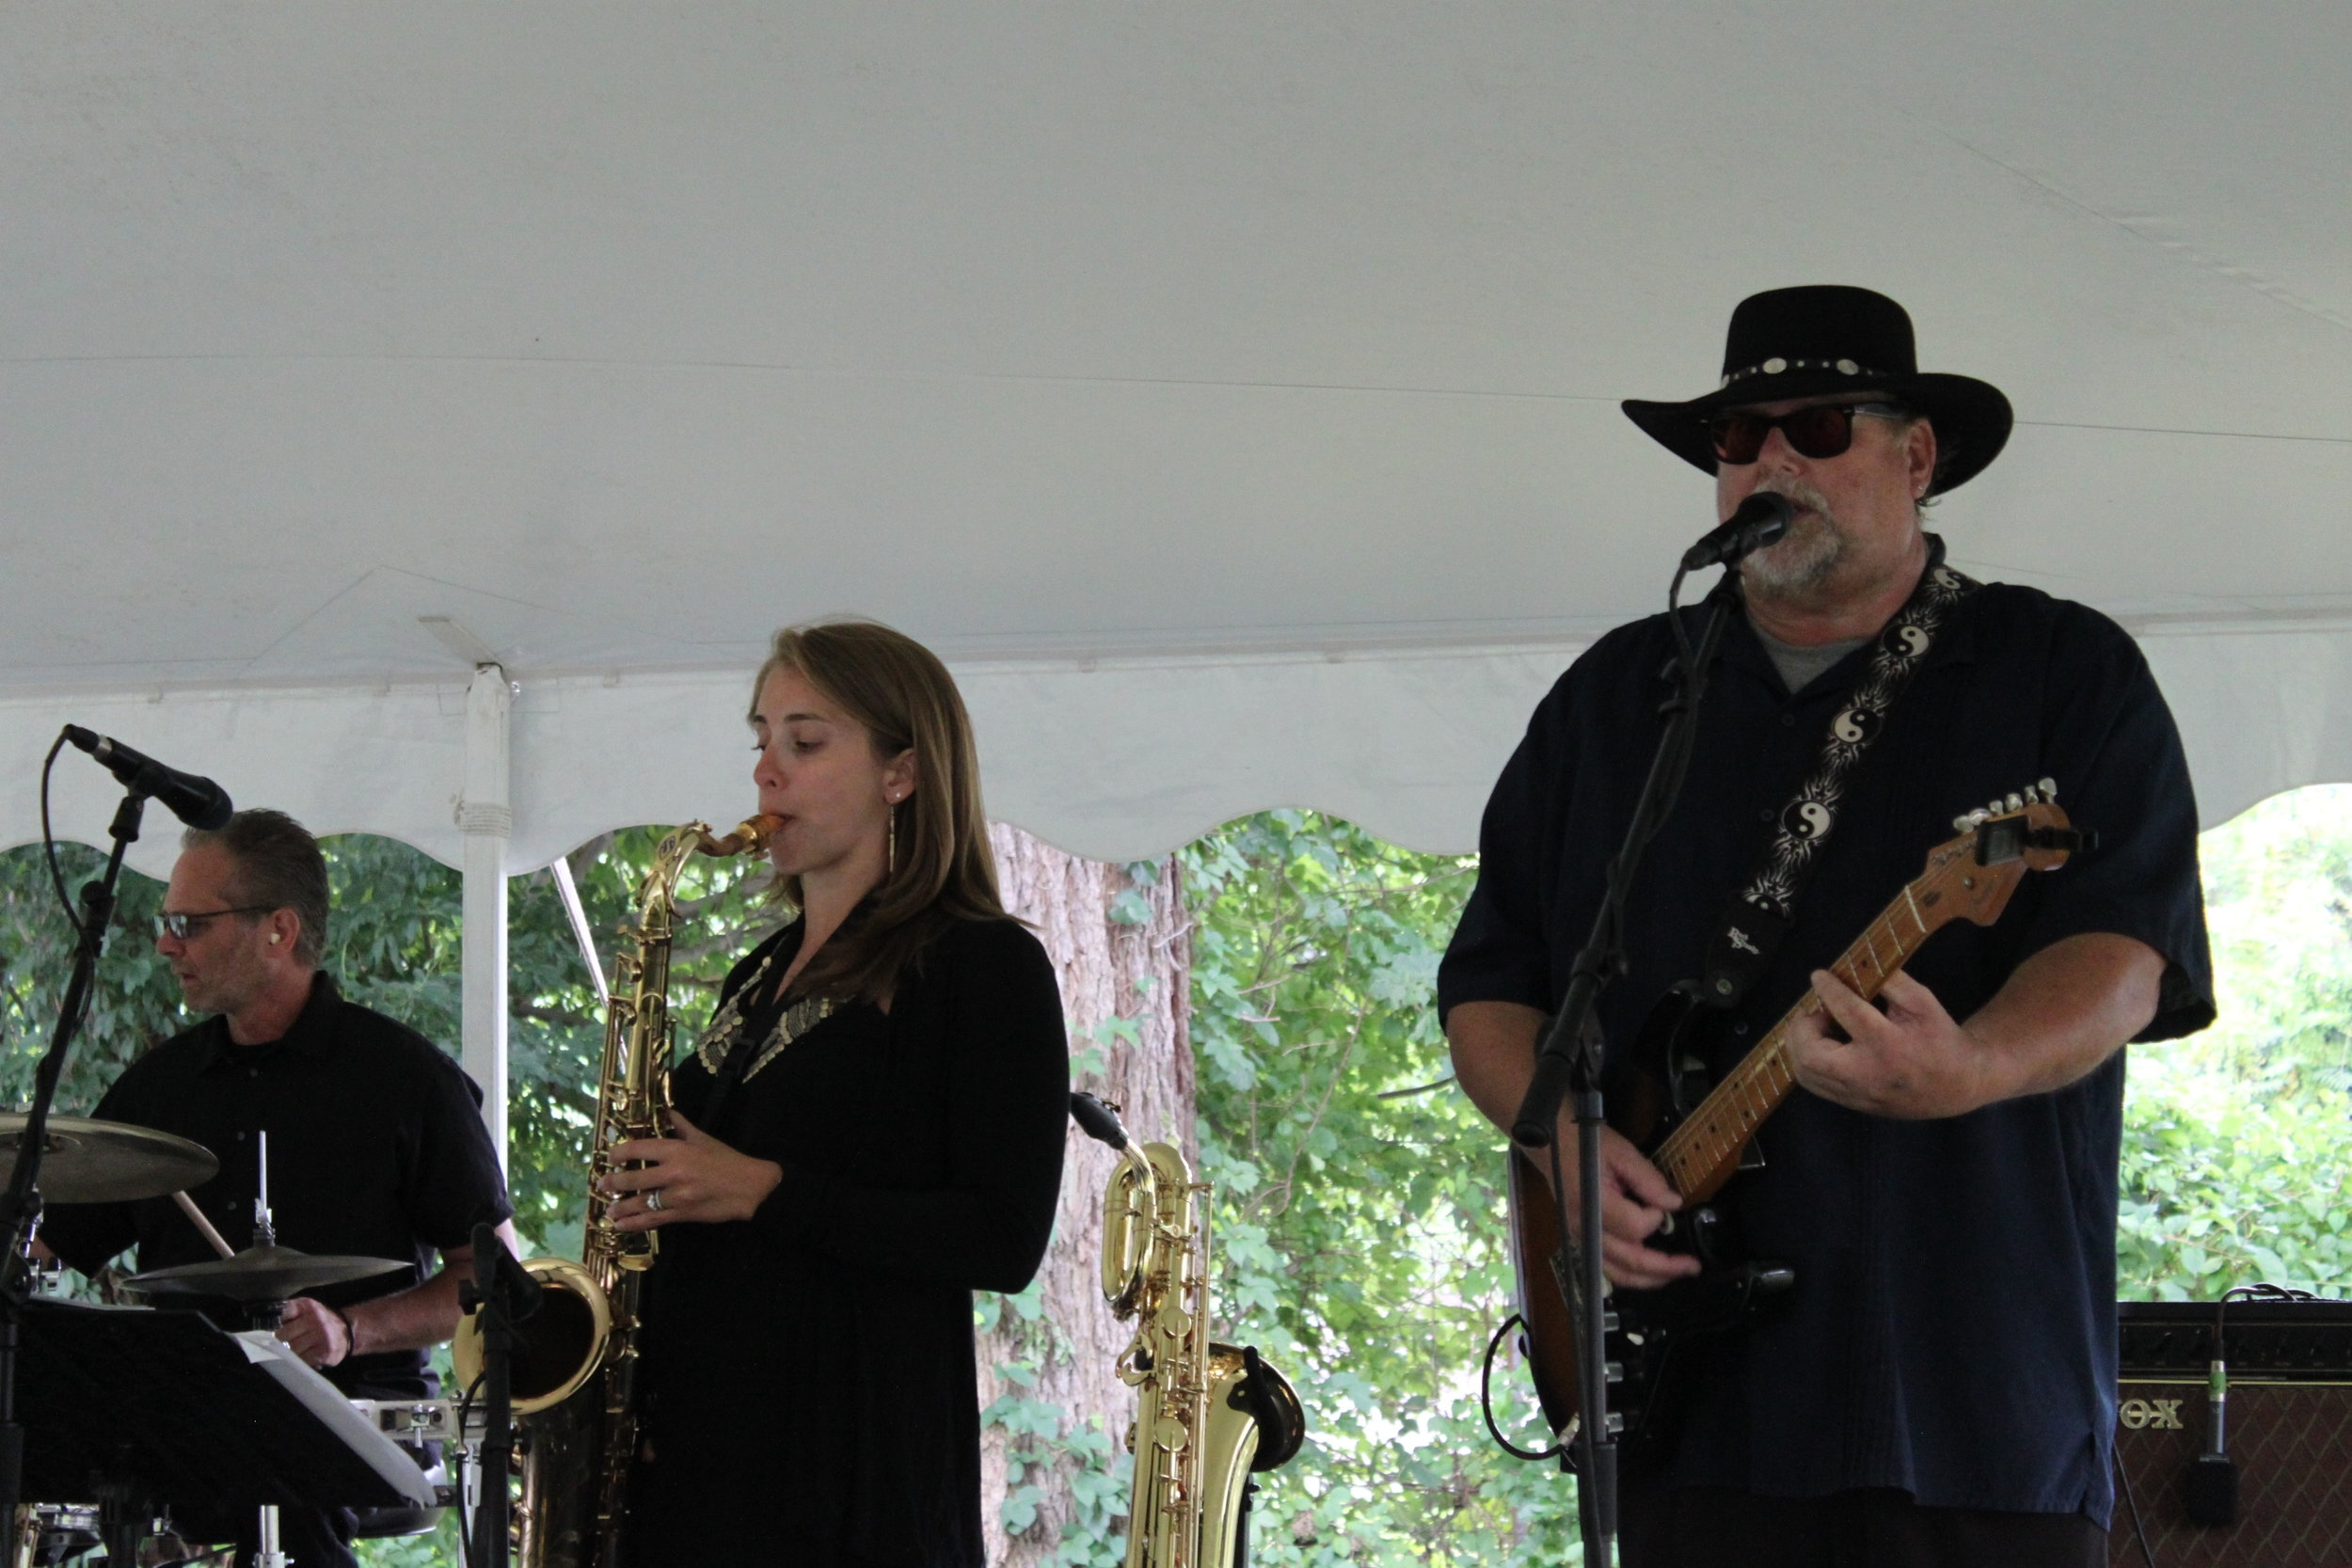 Live Music & Lunch - The Old Lyme Inn welcomes back funk band Mass-Conn-Fusion under the big tent on the lawn, beginning at 11am. Lunch items available from the grill, or sit-down service available on the patio or inside the air conditioned restaurant.